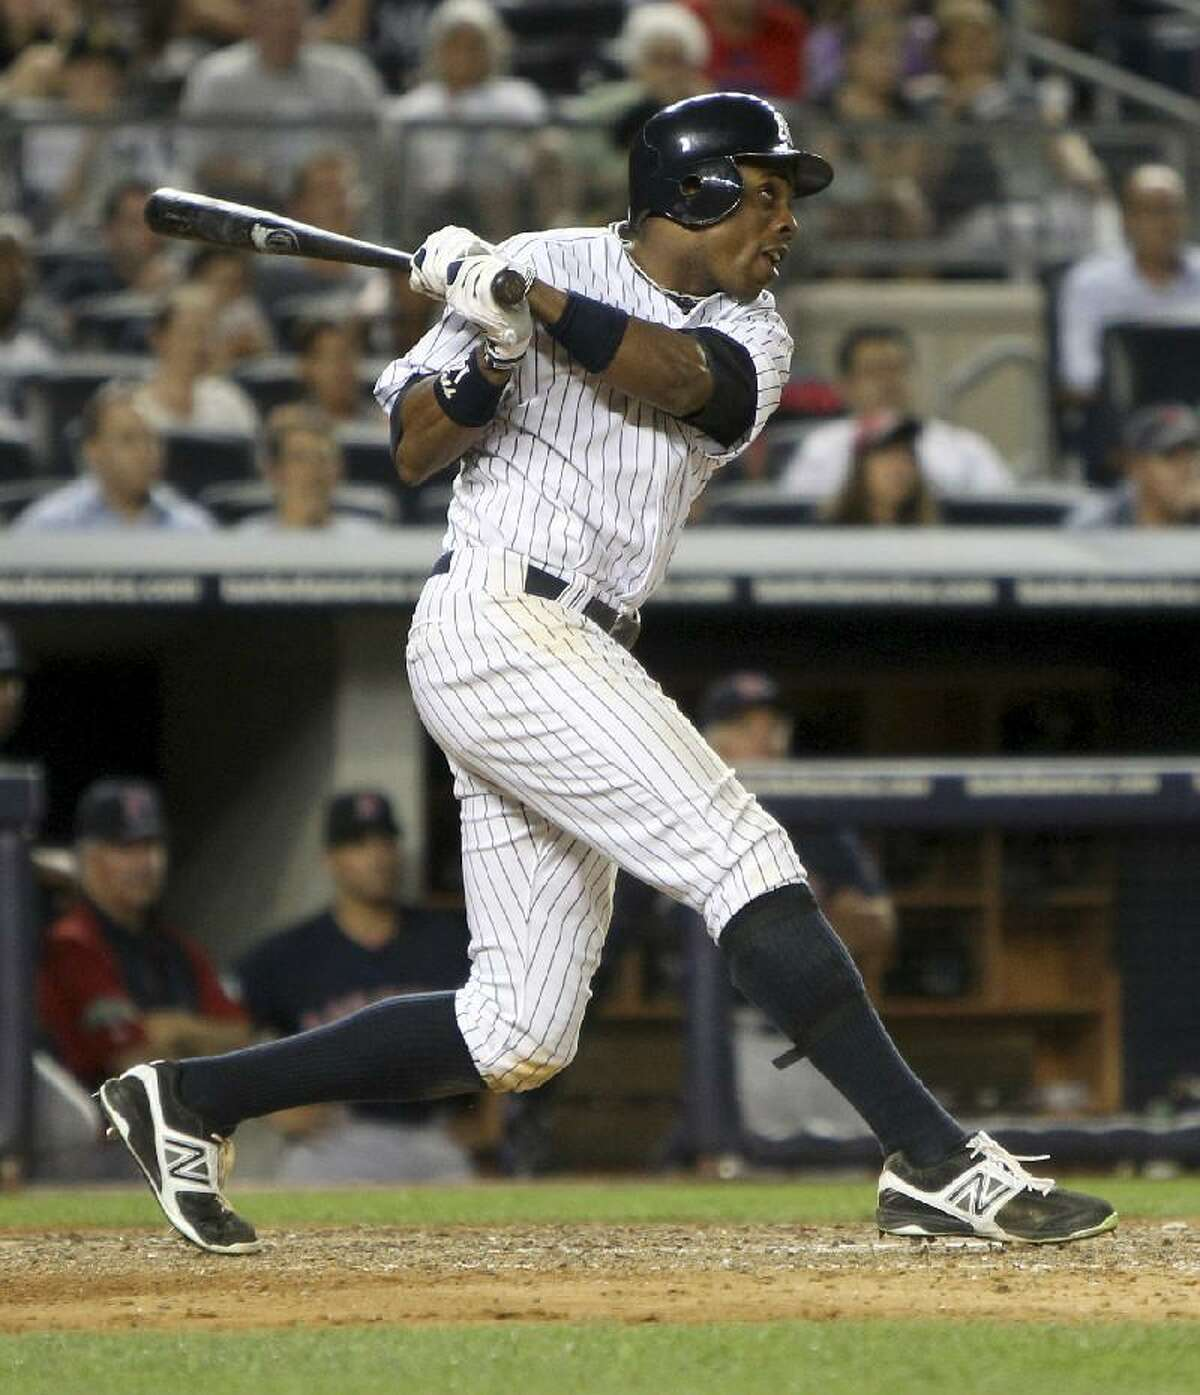 ASSOCIATED PRESS New York Yankees center fielder Curtis Granderson hits a grand slam during the eighth inning of Friday night's game against the Boston Red Sox at Yankee Stadium in New York. The Yankees defeated the Red Sox 10-3.